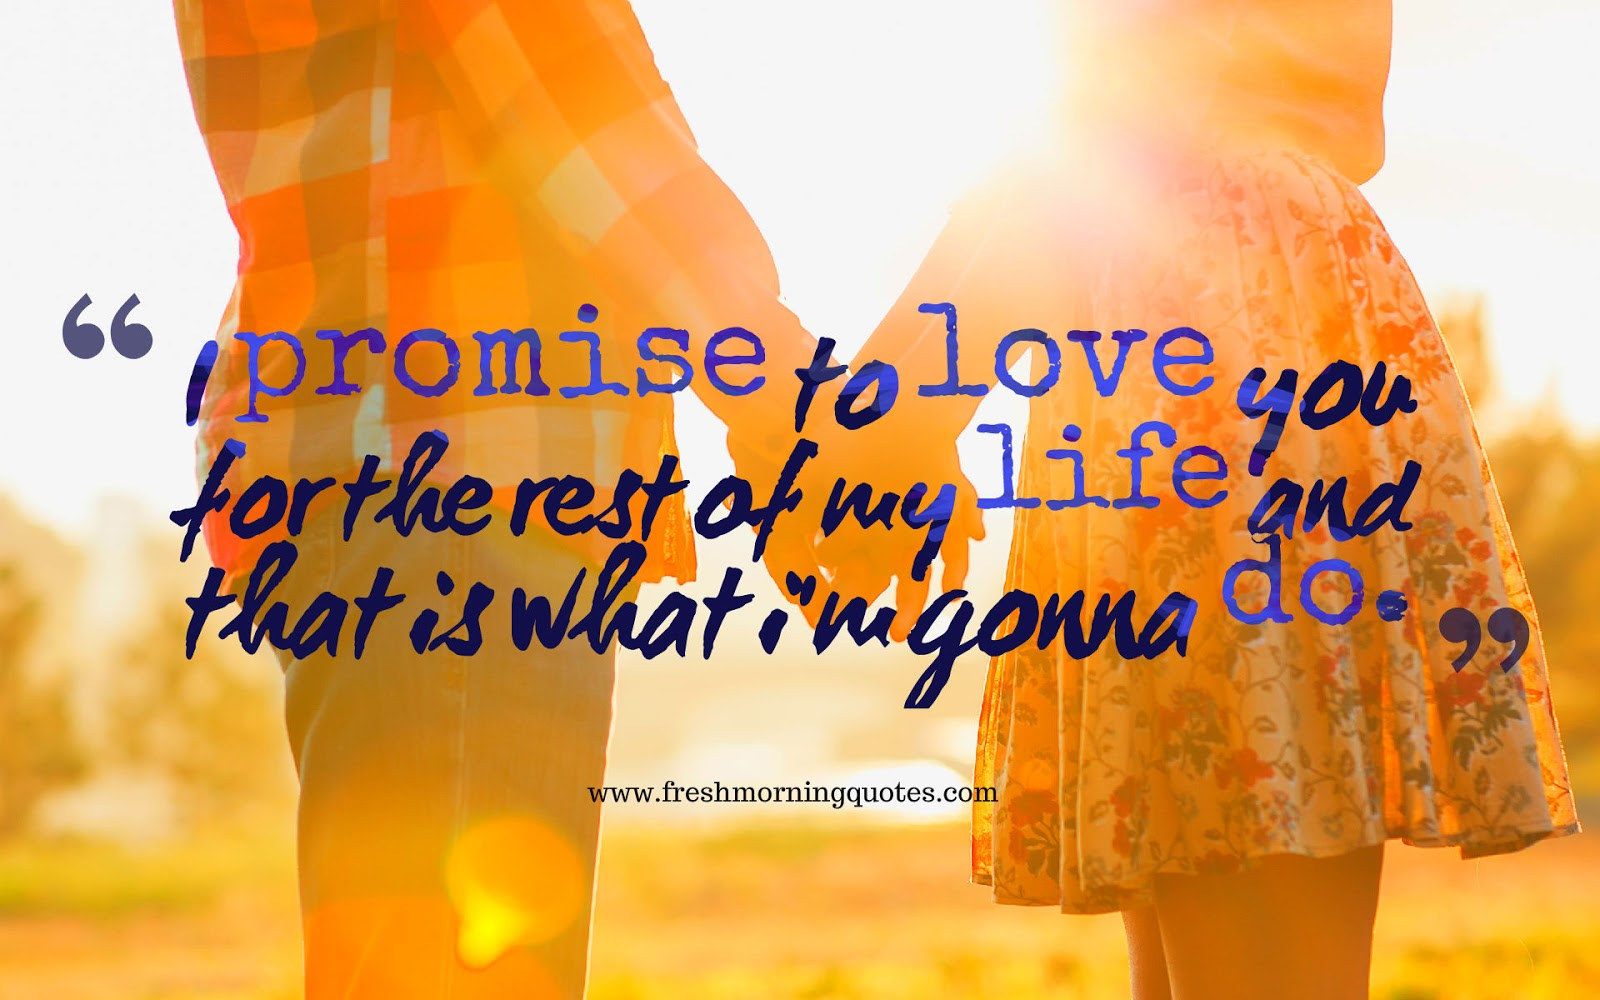 i promise to love you for the rest of my life